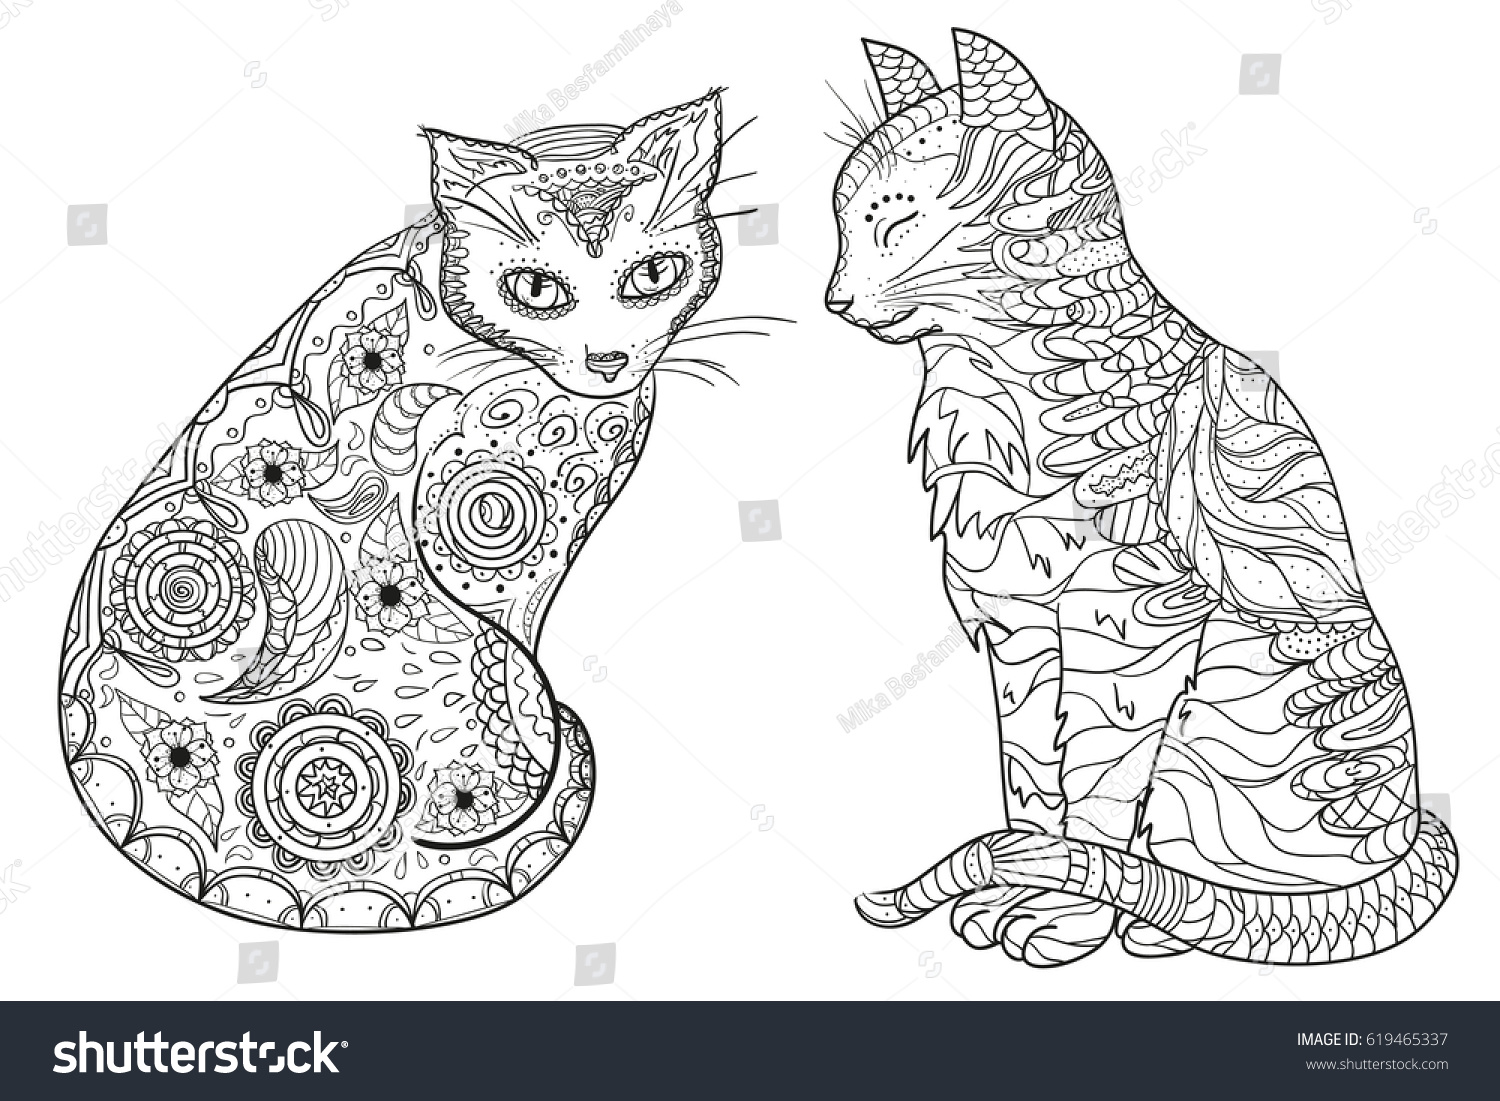 Zen Cats Design Zentangle Hand Drawn Cat With Abstract Patterns On White Background